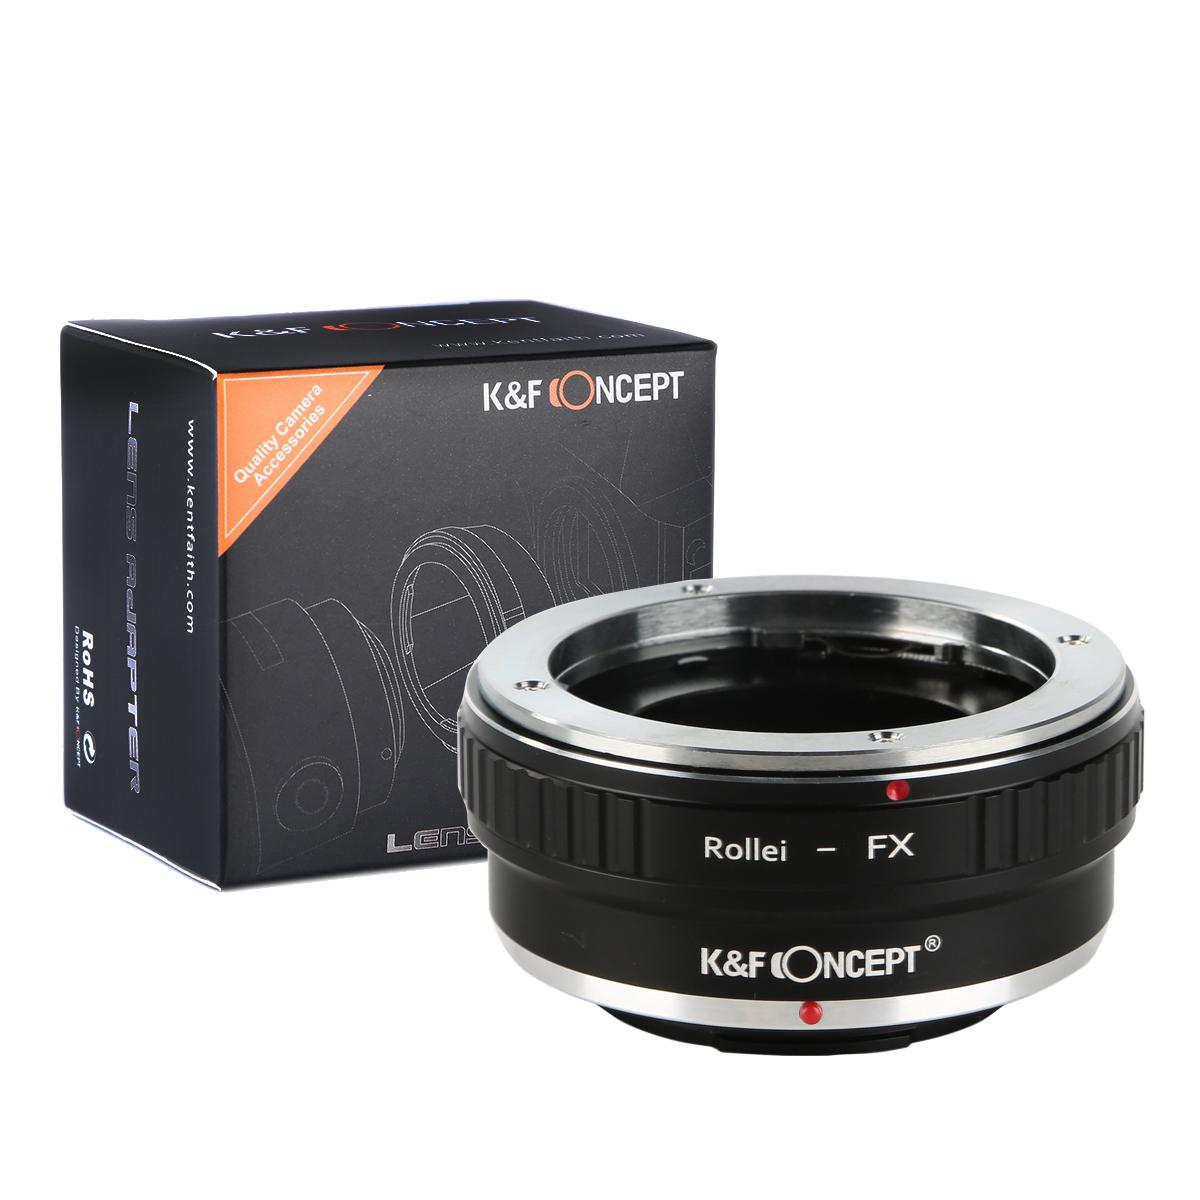 K&F M37111 Rollei QBM Lenses to Fuji X Lens Mount Adapter For DSLR